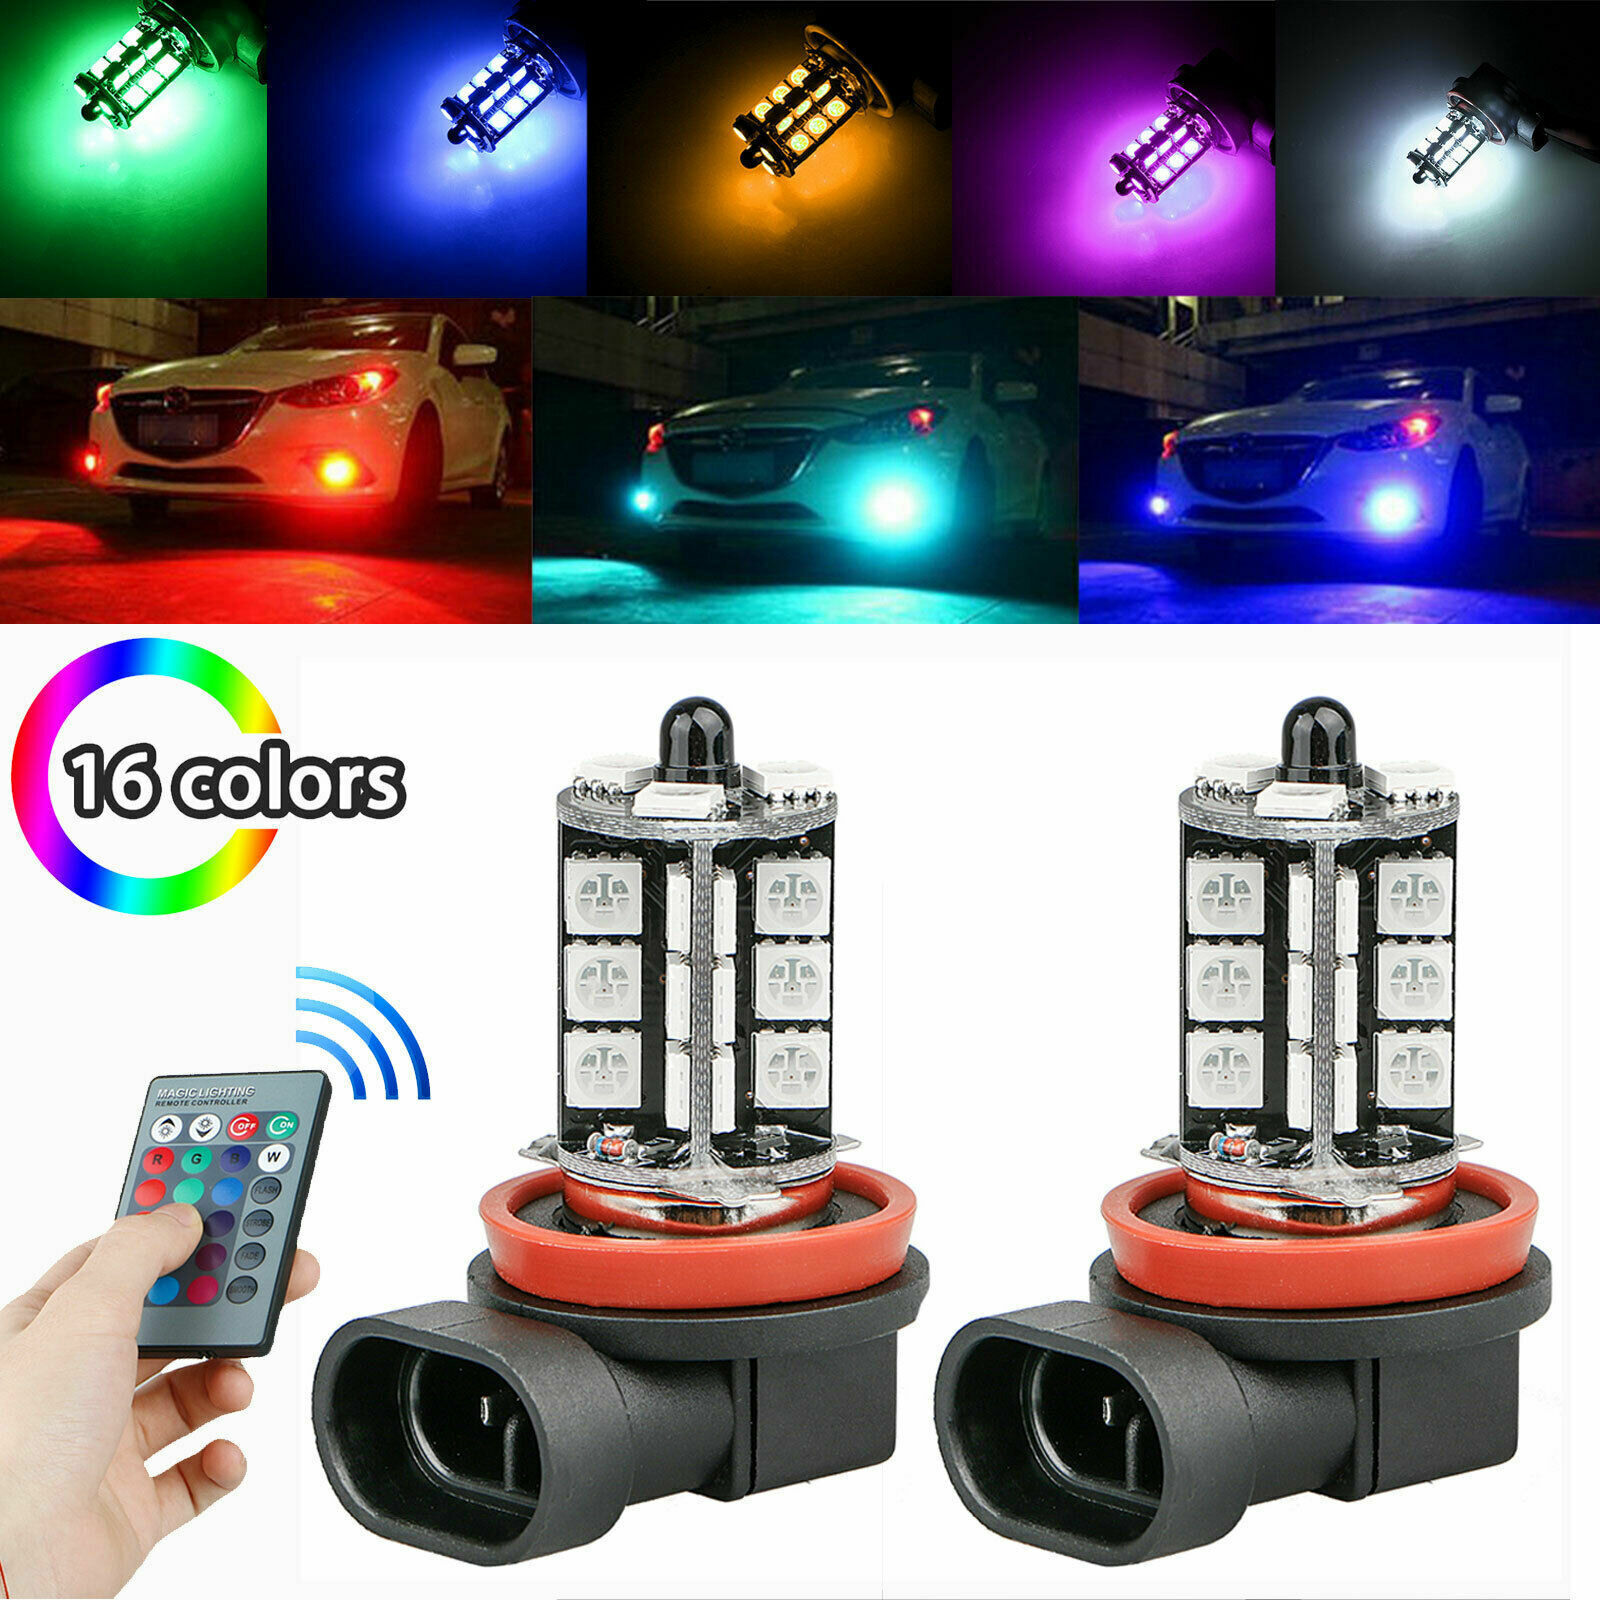 2pc H11 H9 H8 27SMD 5050 16Color RGB LED Fog Lights Driving Bulbs Lamp w/ Remote